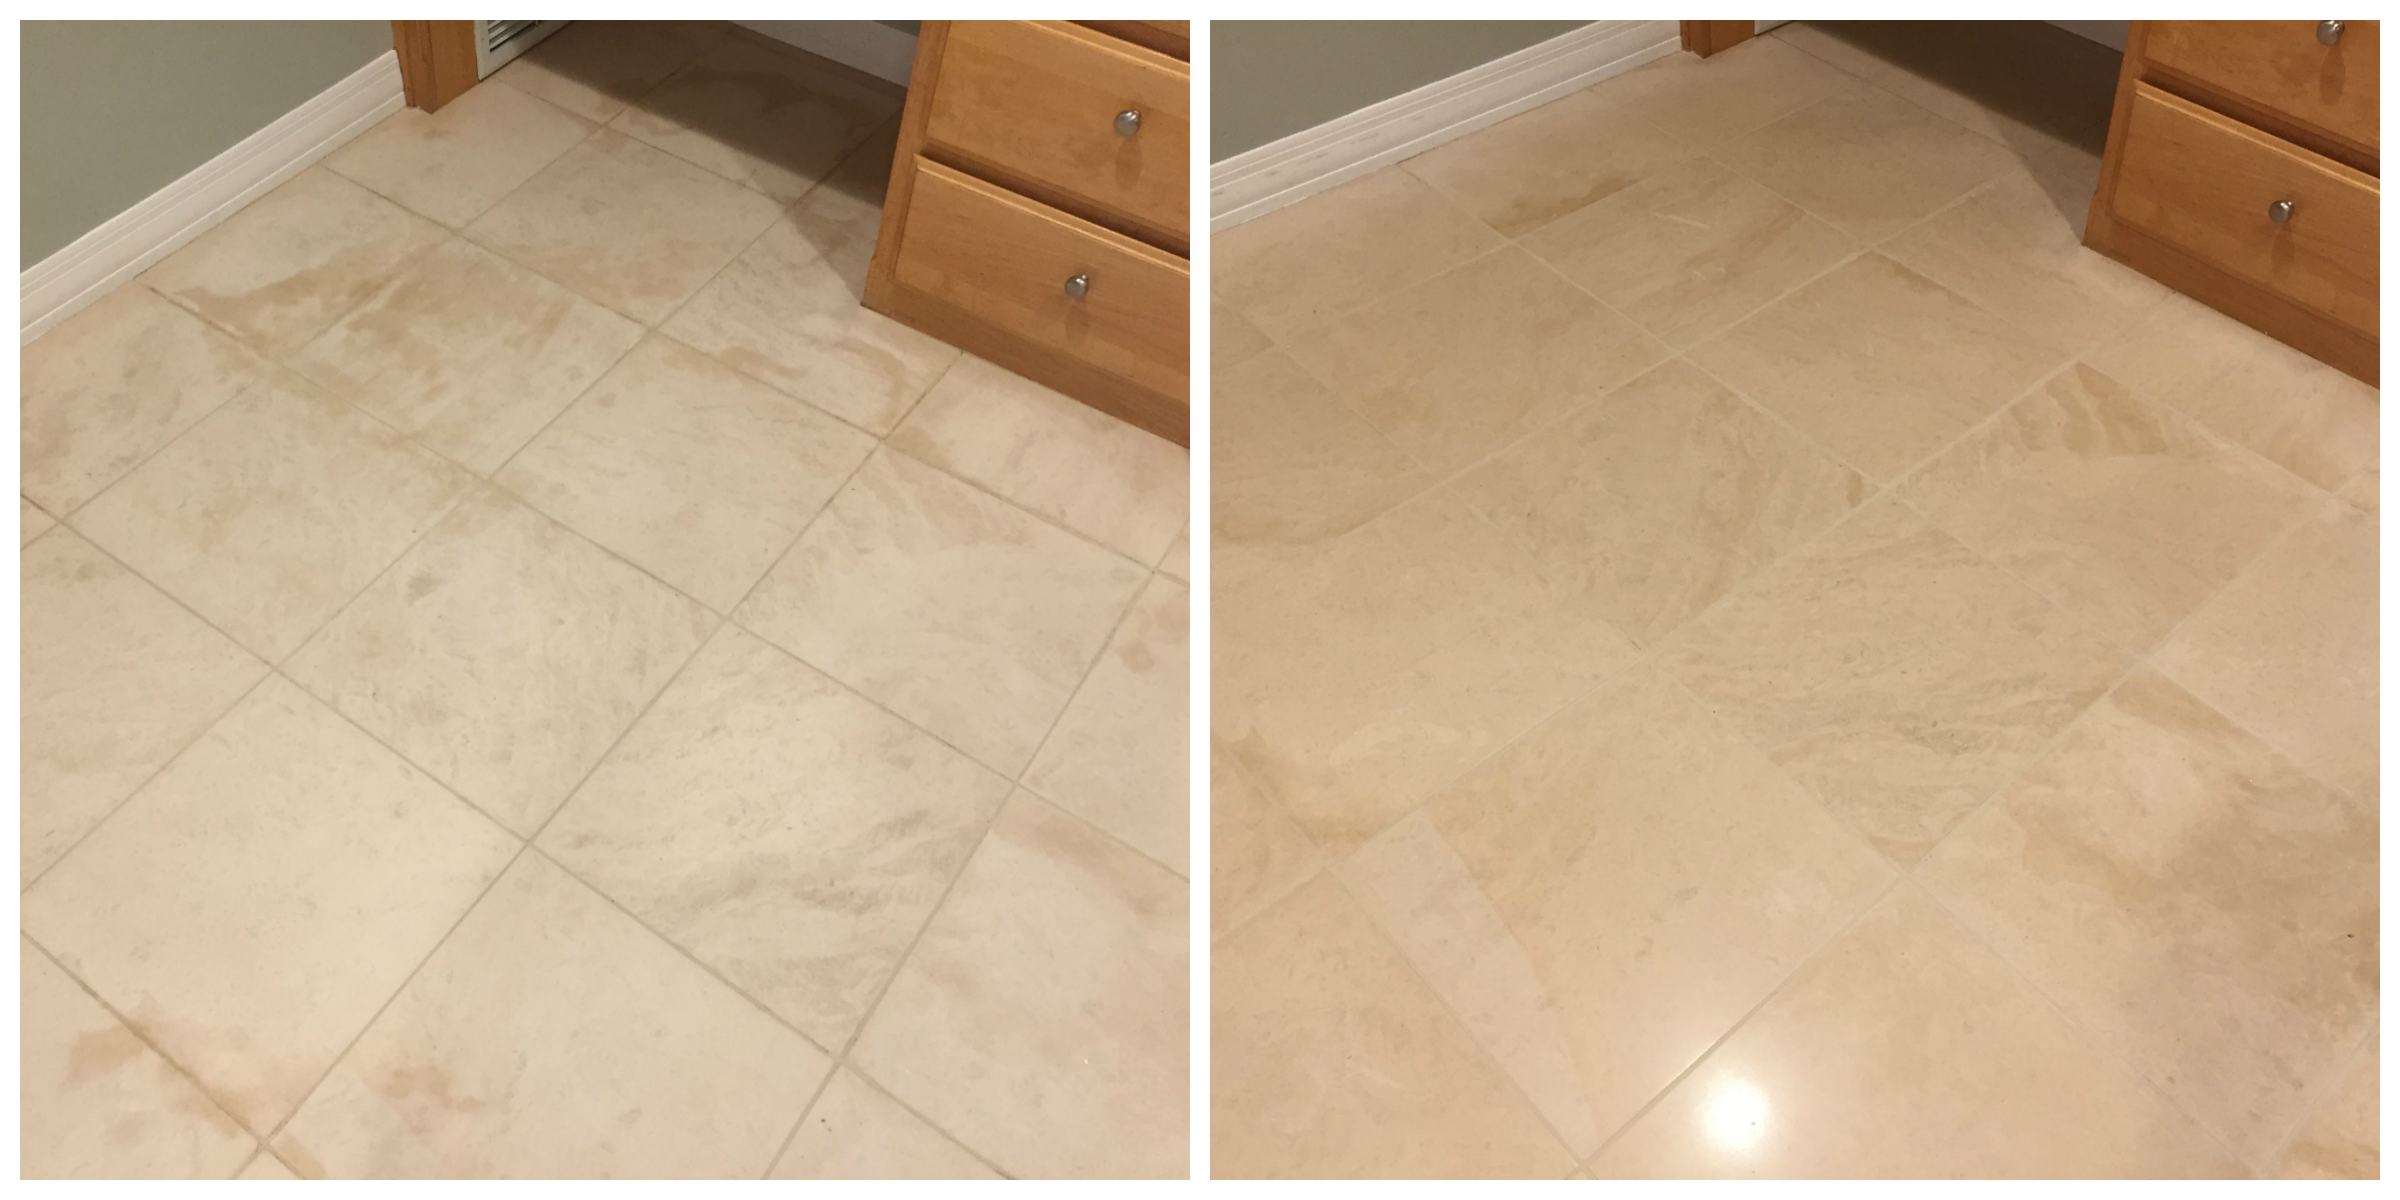 Limestone polishing is done with weighted buffers diamond limestone polishing is done with weighted buffers diamond polishing pads and rinse extraction machines a penetrating sealer is then used to seal the tile dailygadgetfo Image collections